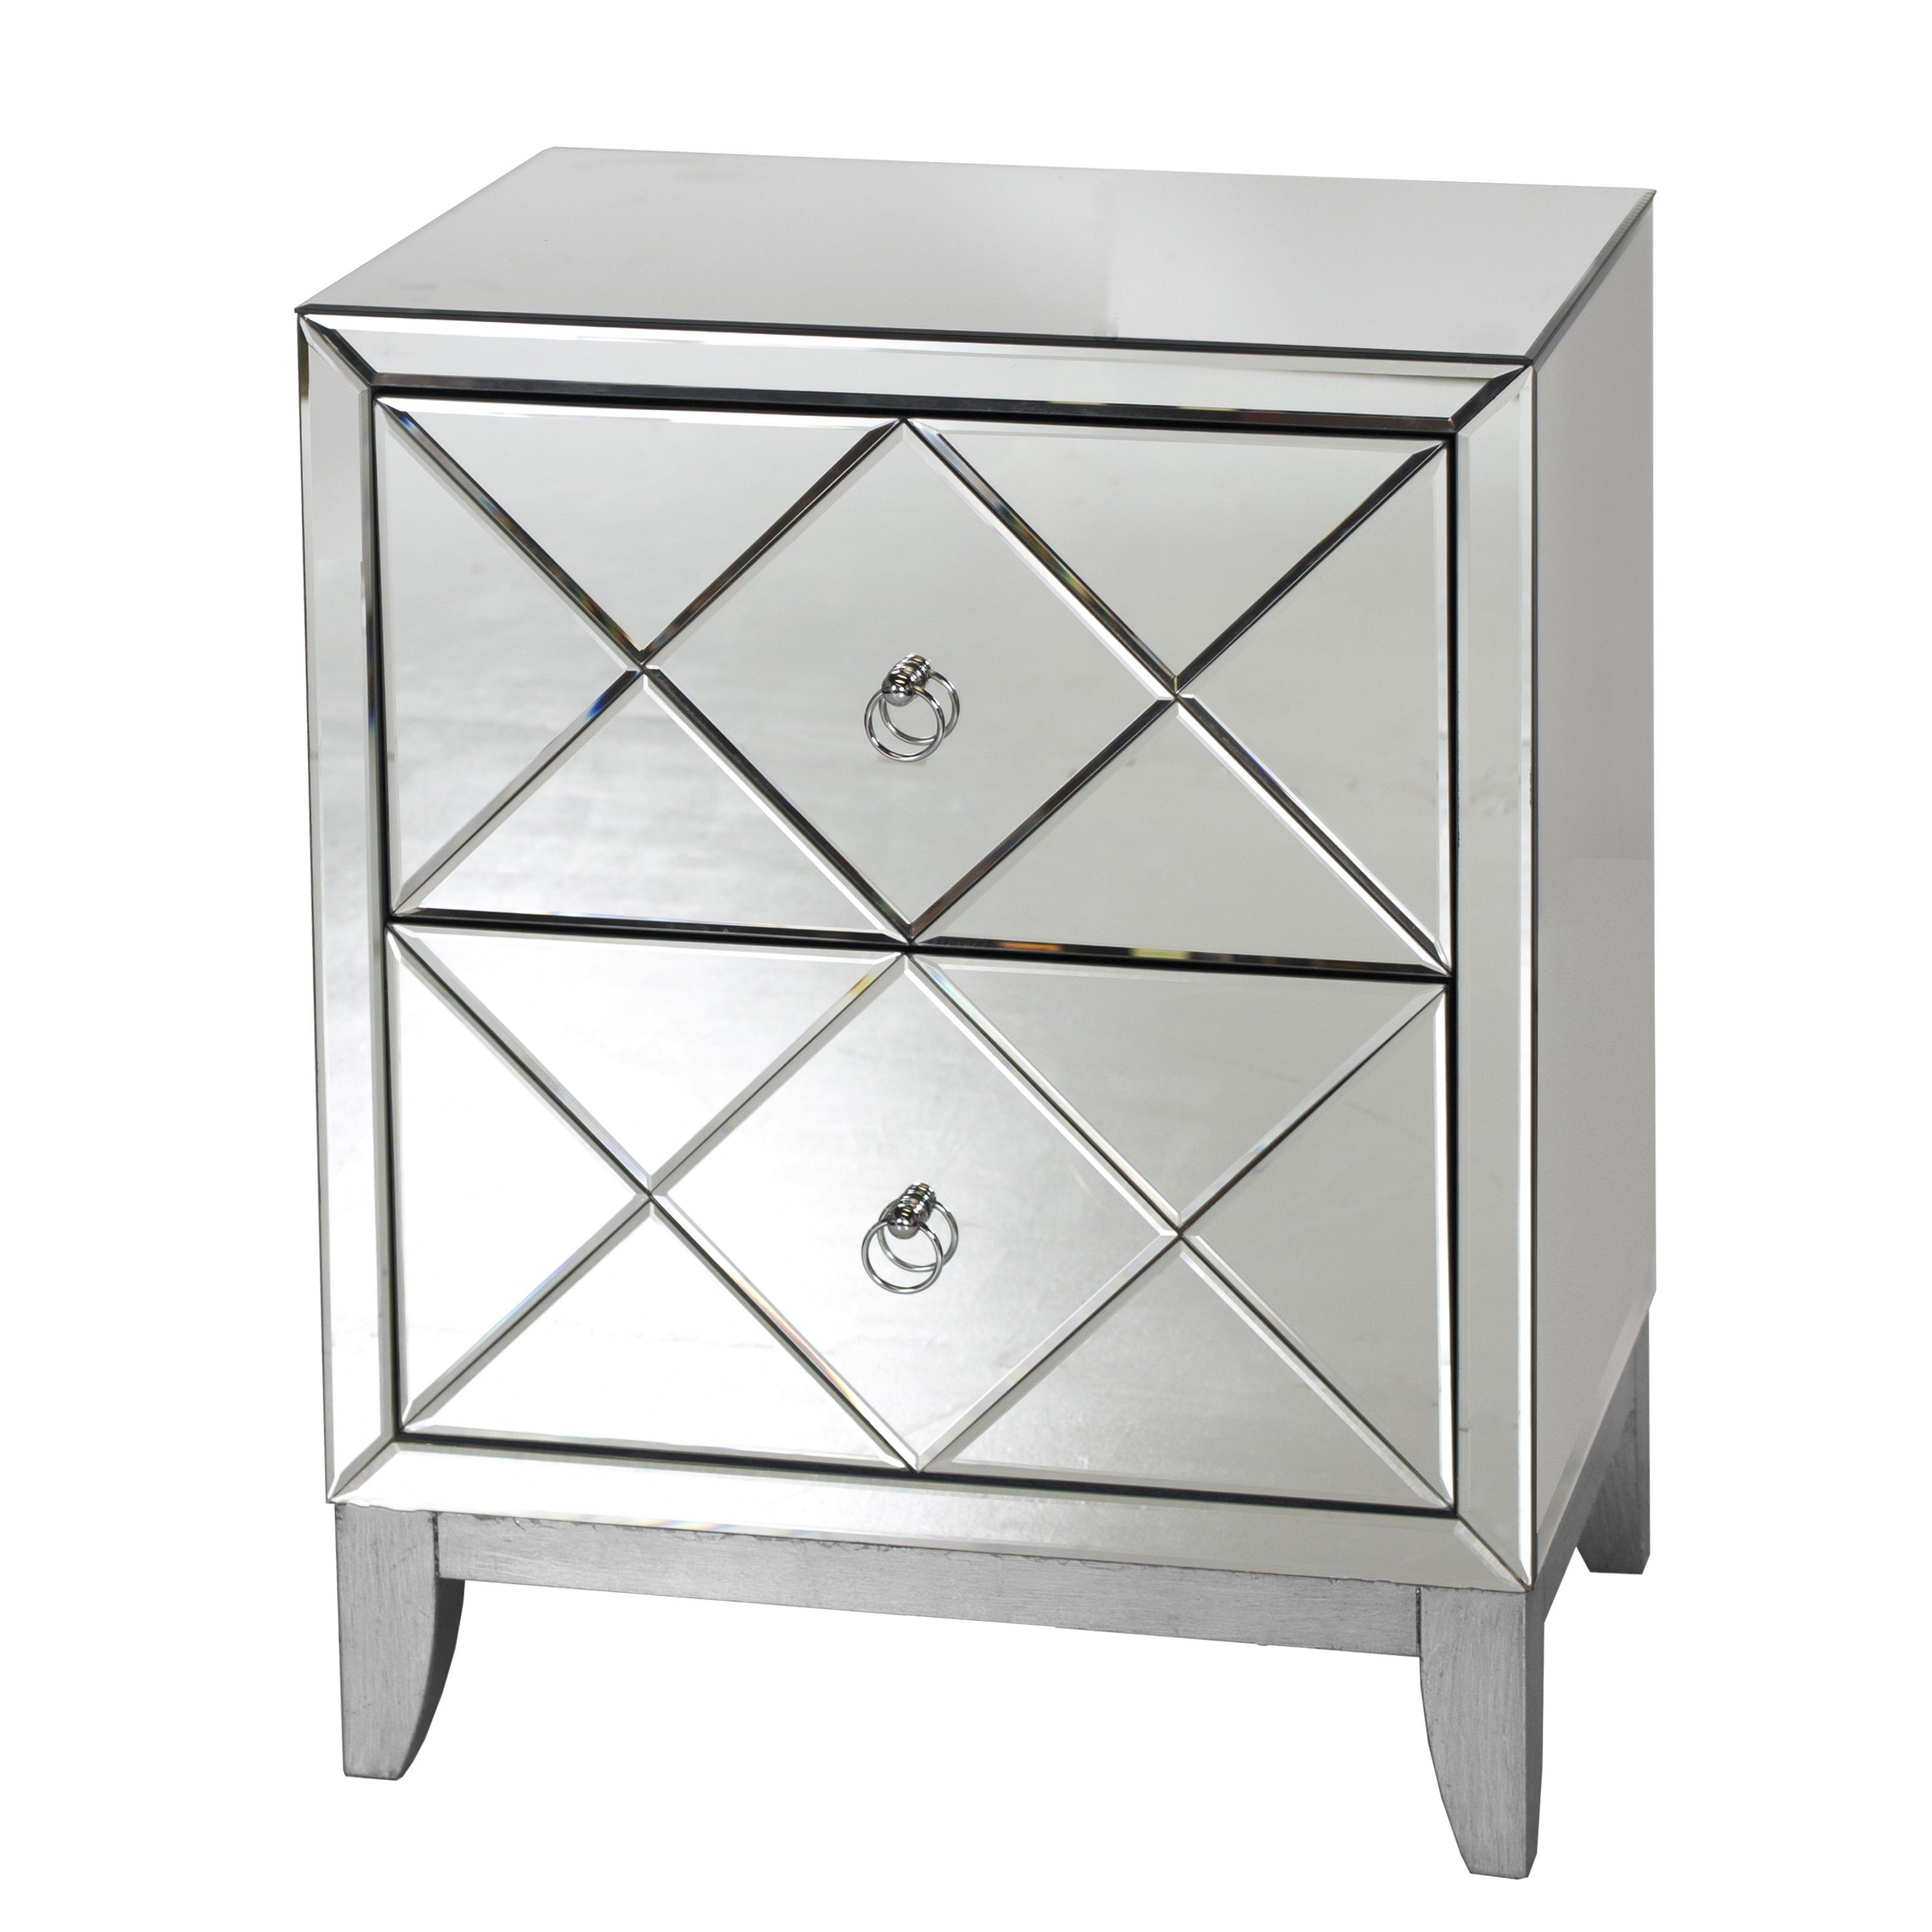 polished collections alan vintage and modern decor in rustic ellis mirror end table contemporary side copper tables